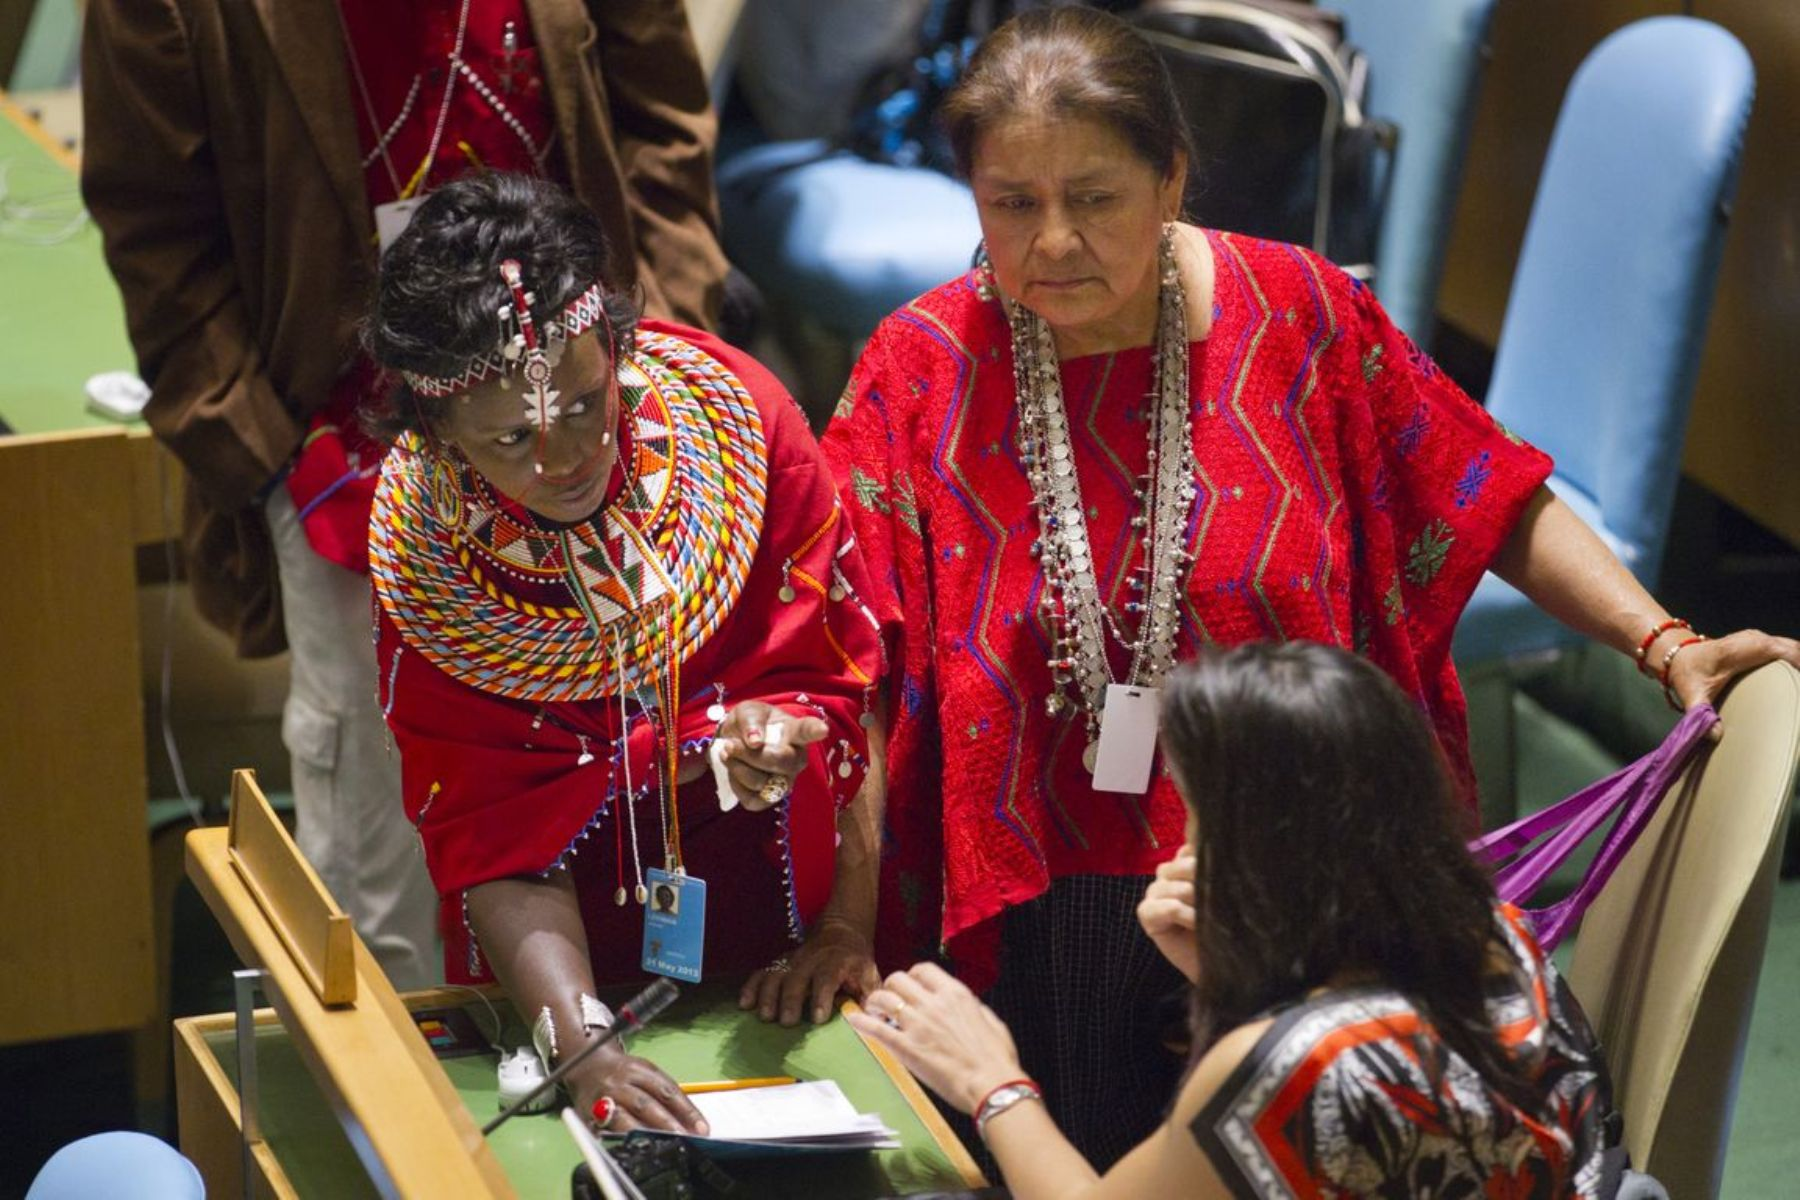 Peru has the second largest population of indigenous women in Latin America.